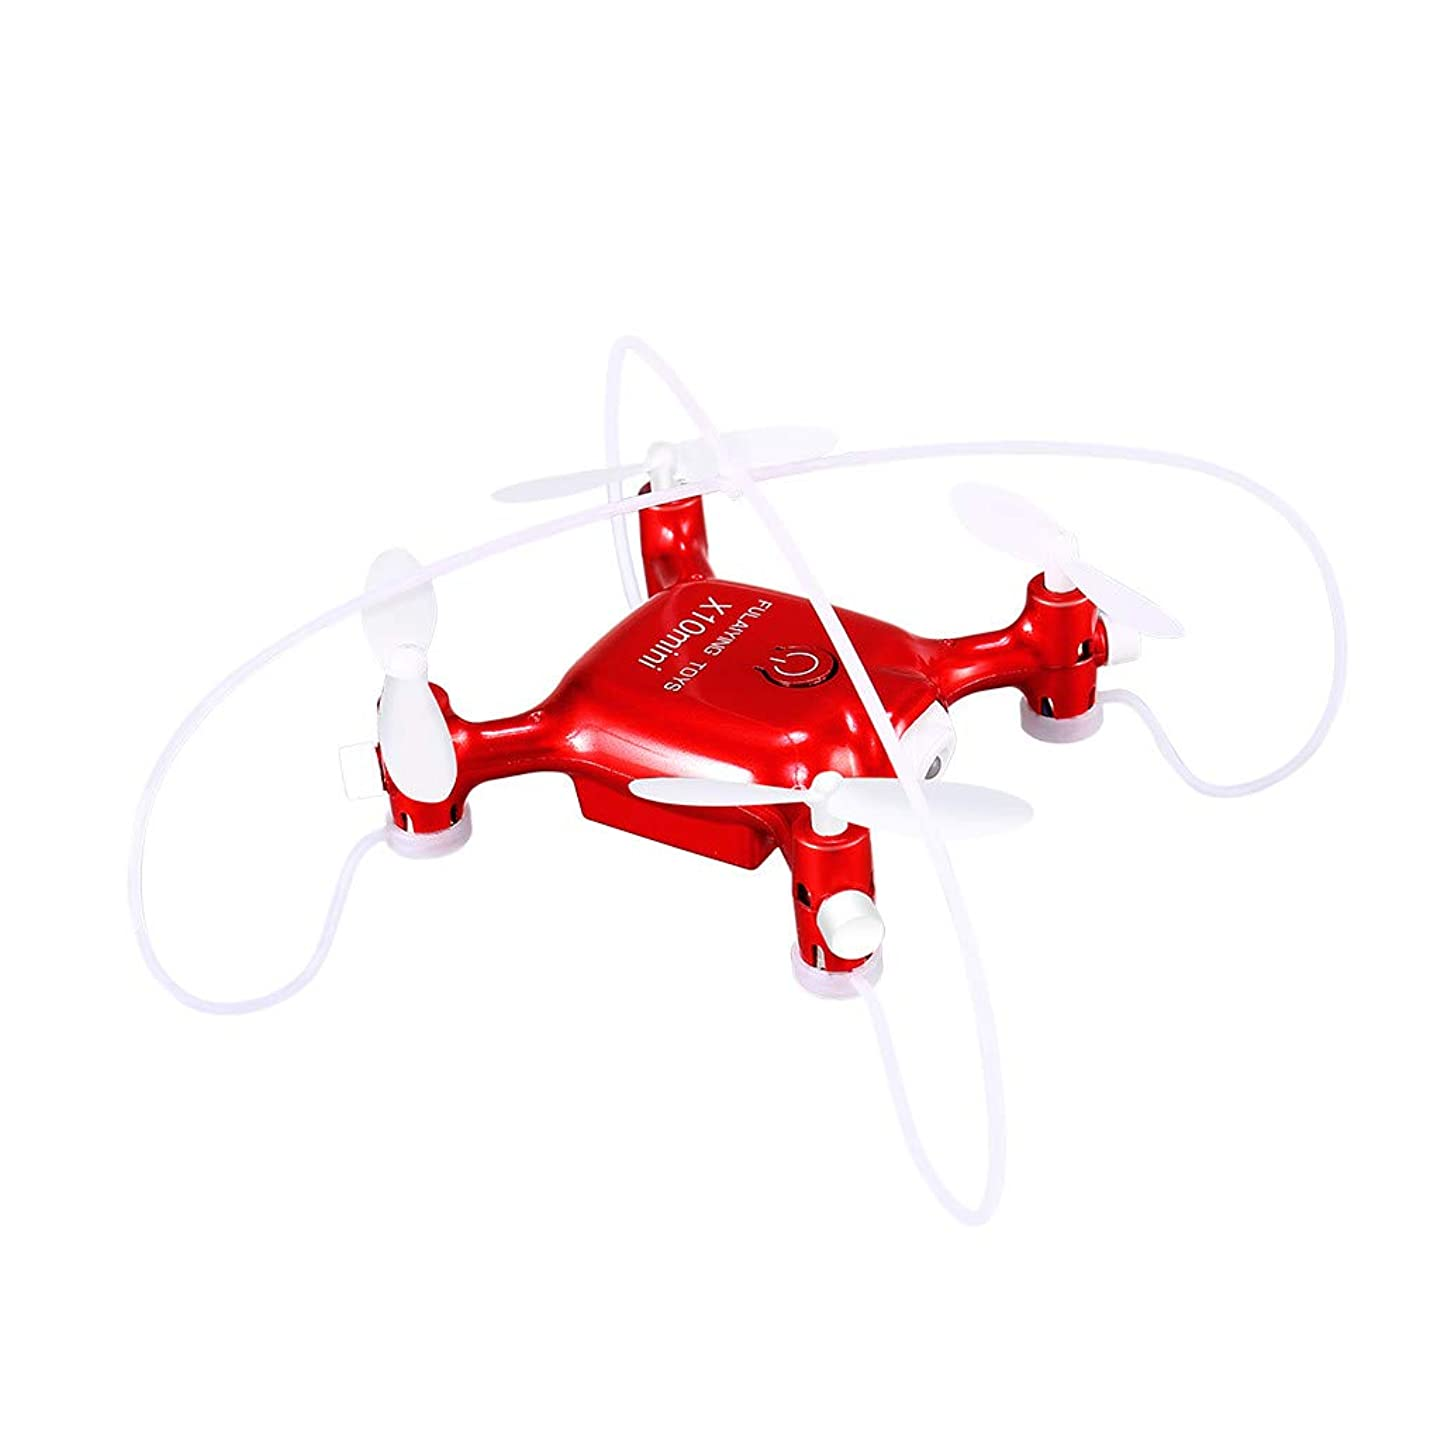 Chercherr RC Drone, Altitude Hold RC Drone Innovative Selfie Drone Mini 2.4Ghz WiFi 4CH Phone Control Quadcopter with LED Light Headless Mode 3D Flip One Button Takeoff/One Button Return (Red)